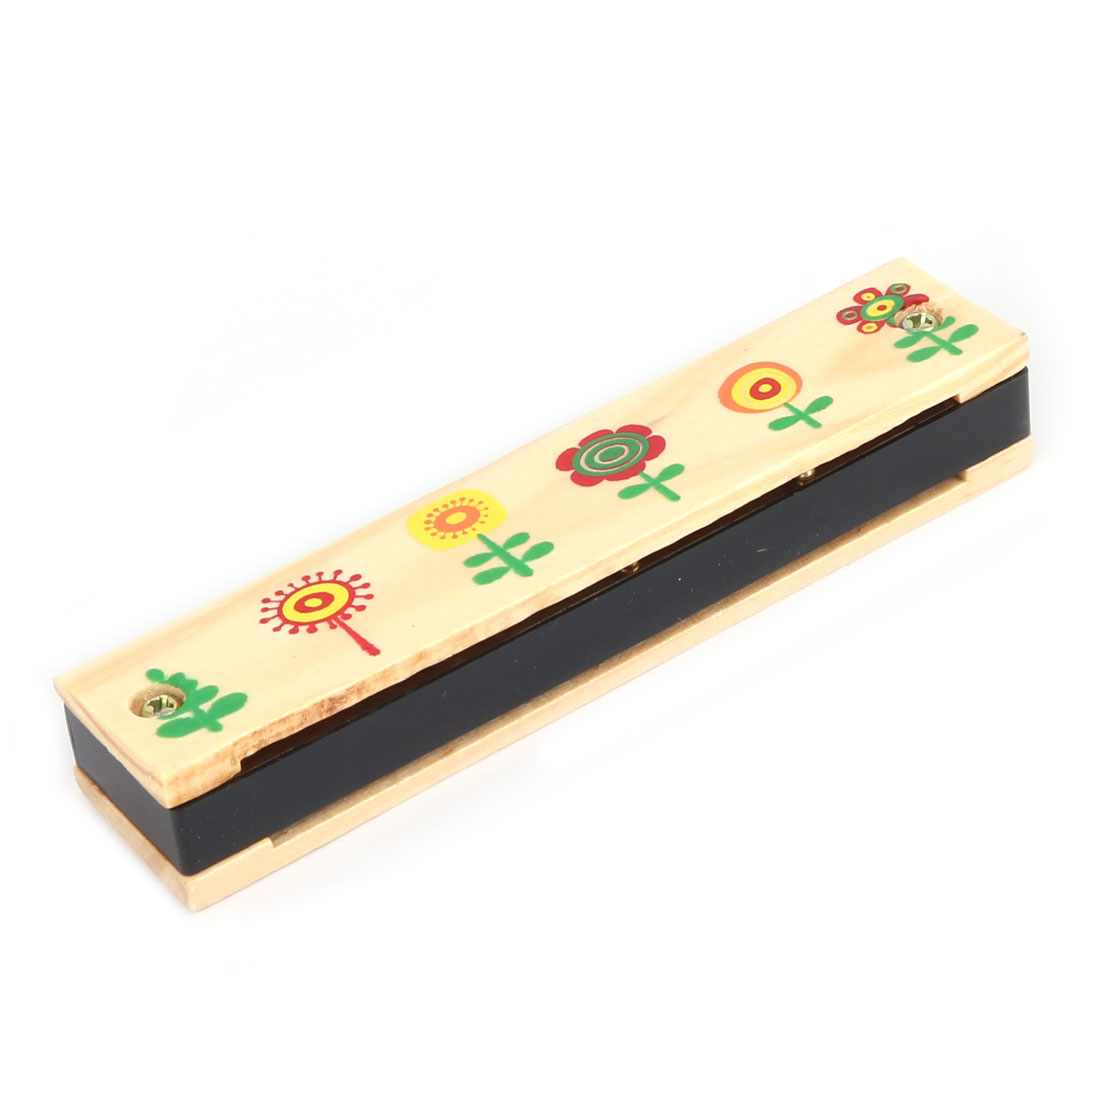 Unique BargainsWooden Flower Pattern Early Education Dual Rows Harmonica Musical Instrument - image 1 of 3